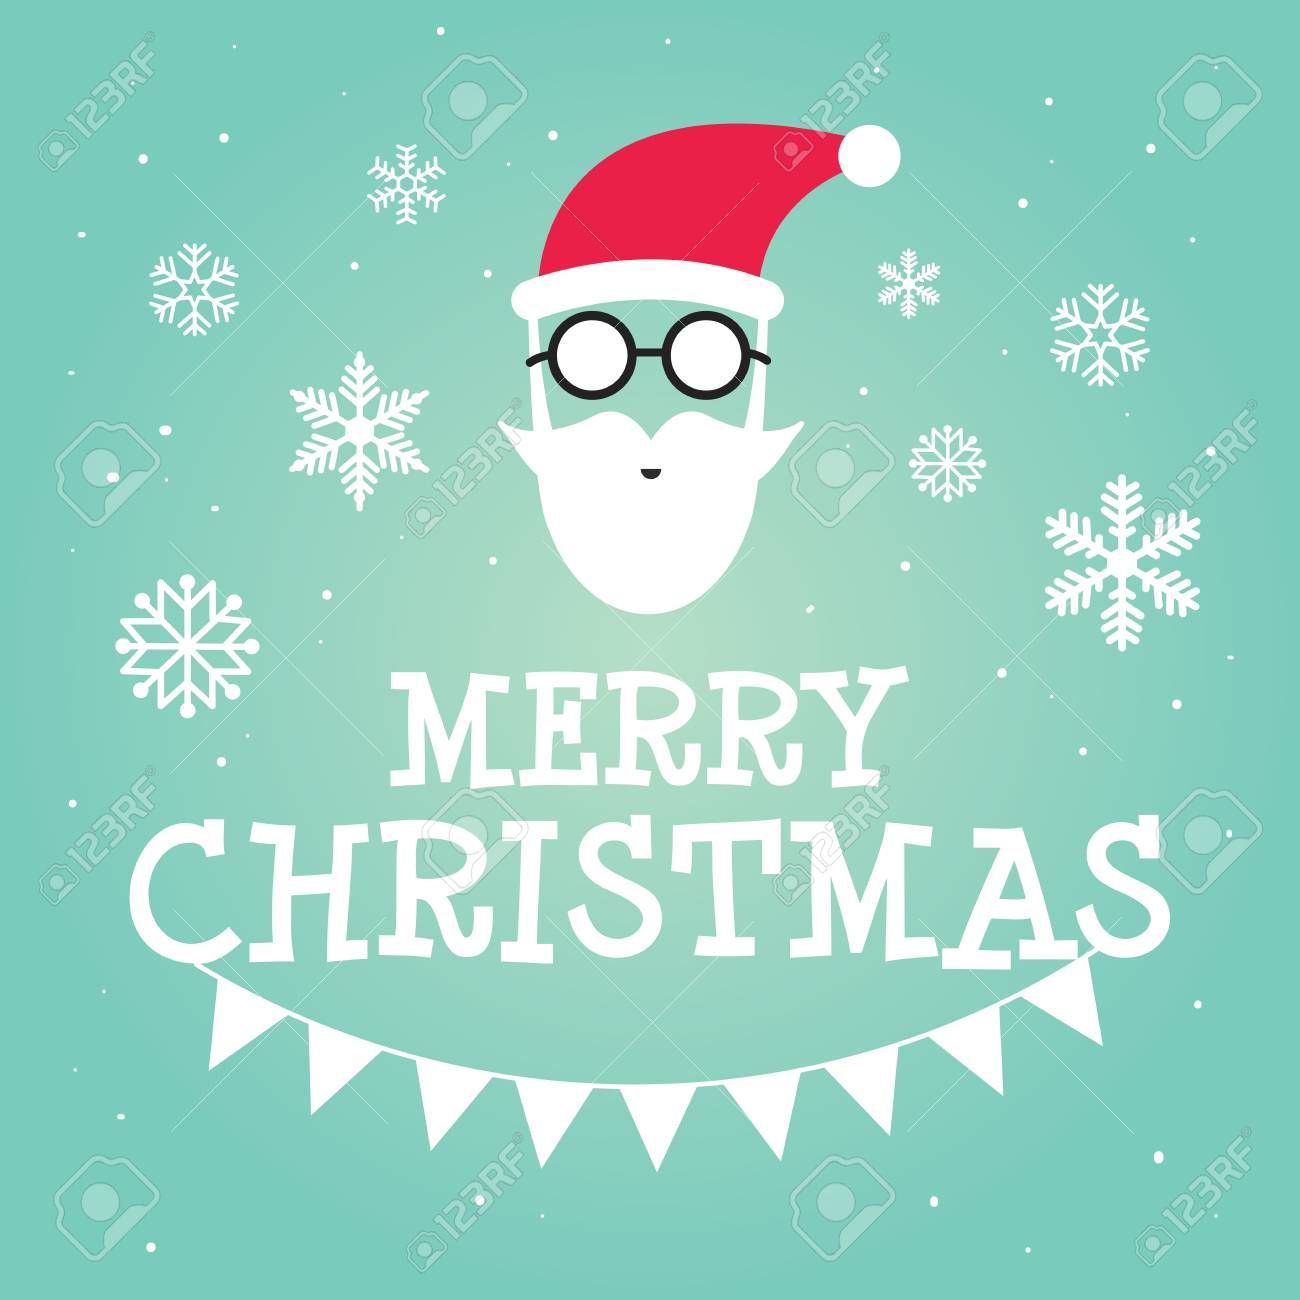 Hipster Santa Claus Greeting Card Or Invitation On Christmas